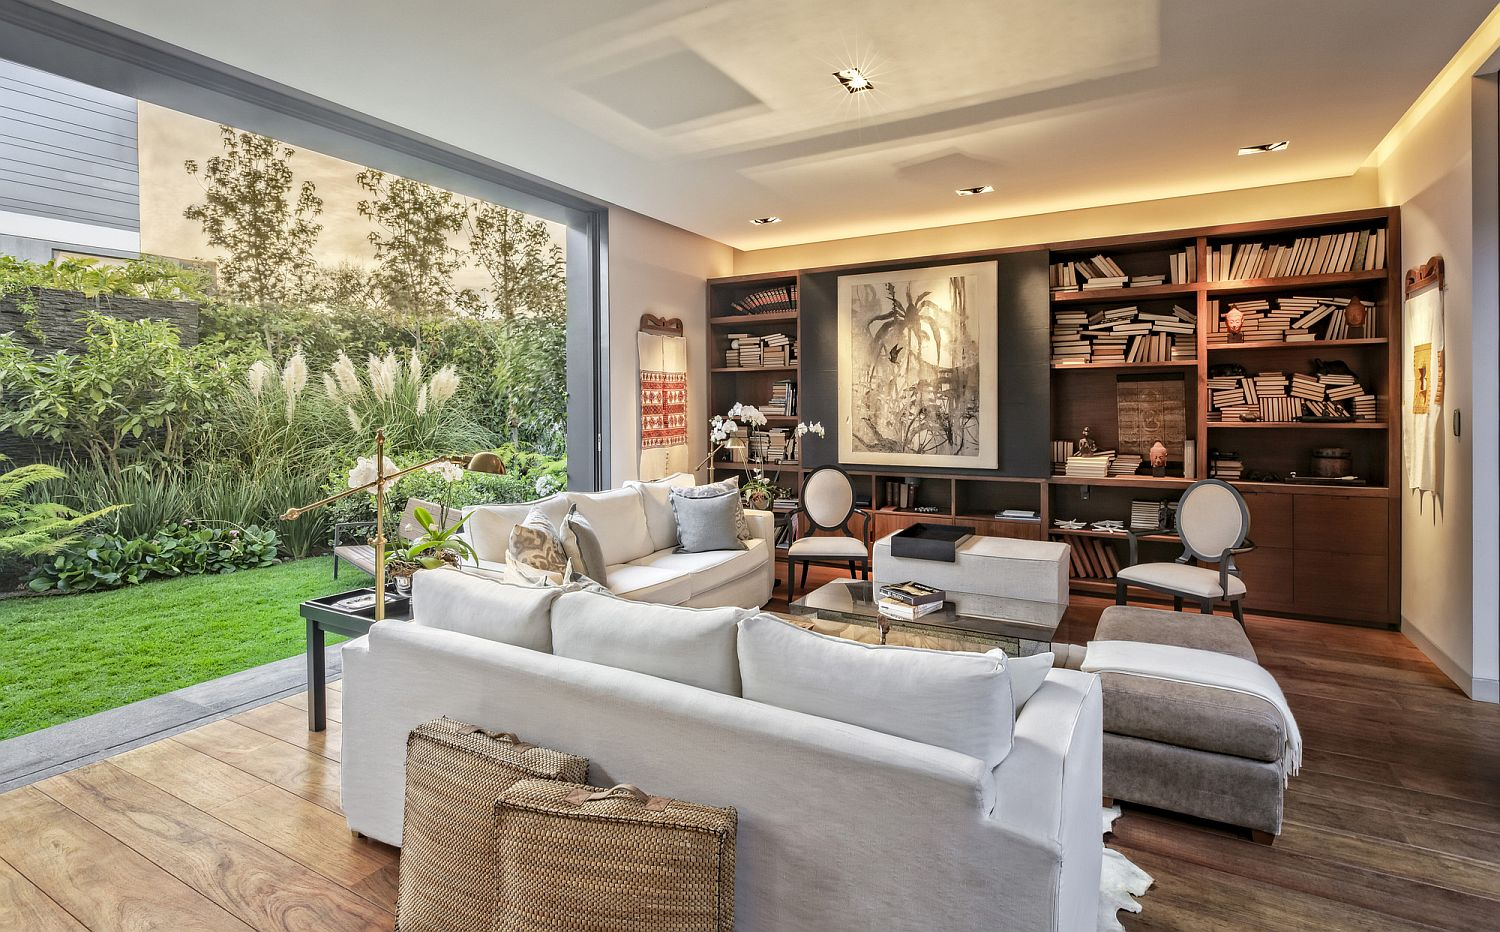 Relaxing decor and a view of the green yard shape an open and inviting living space